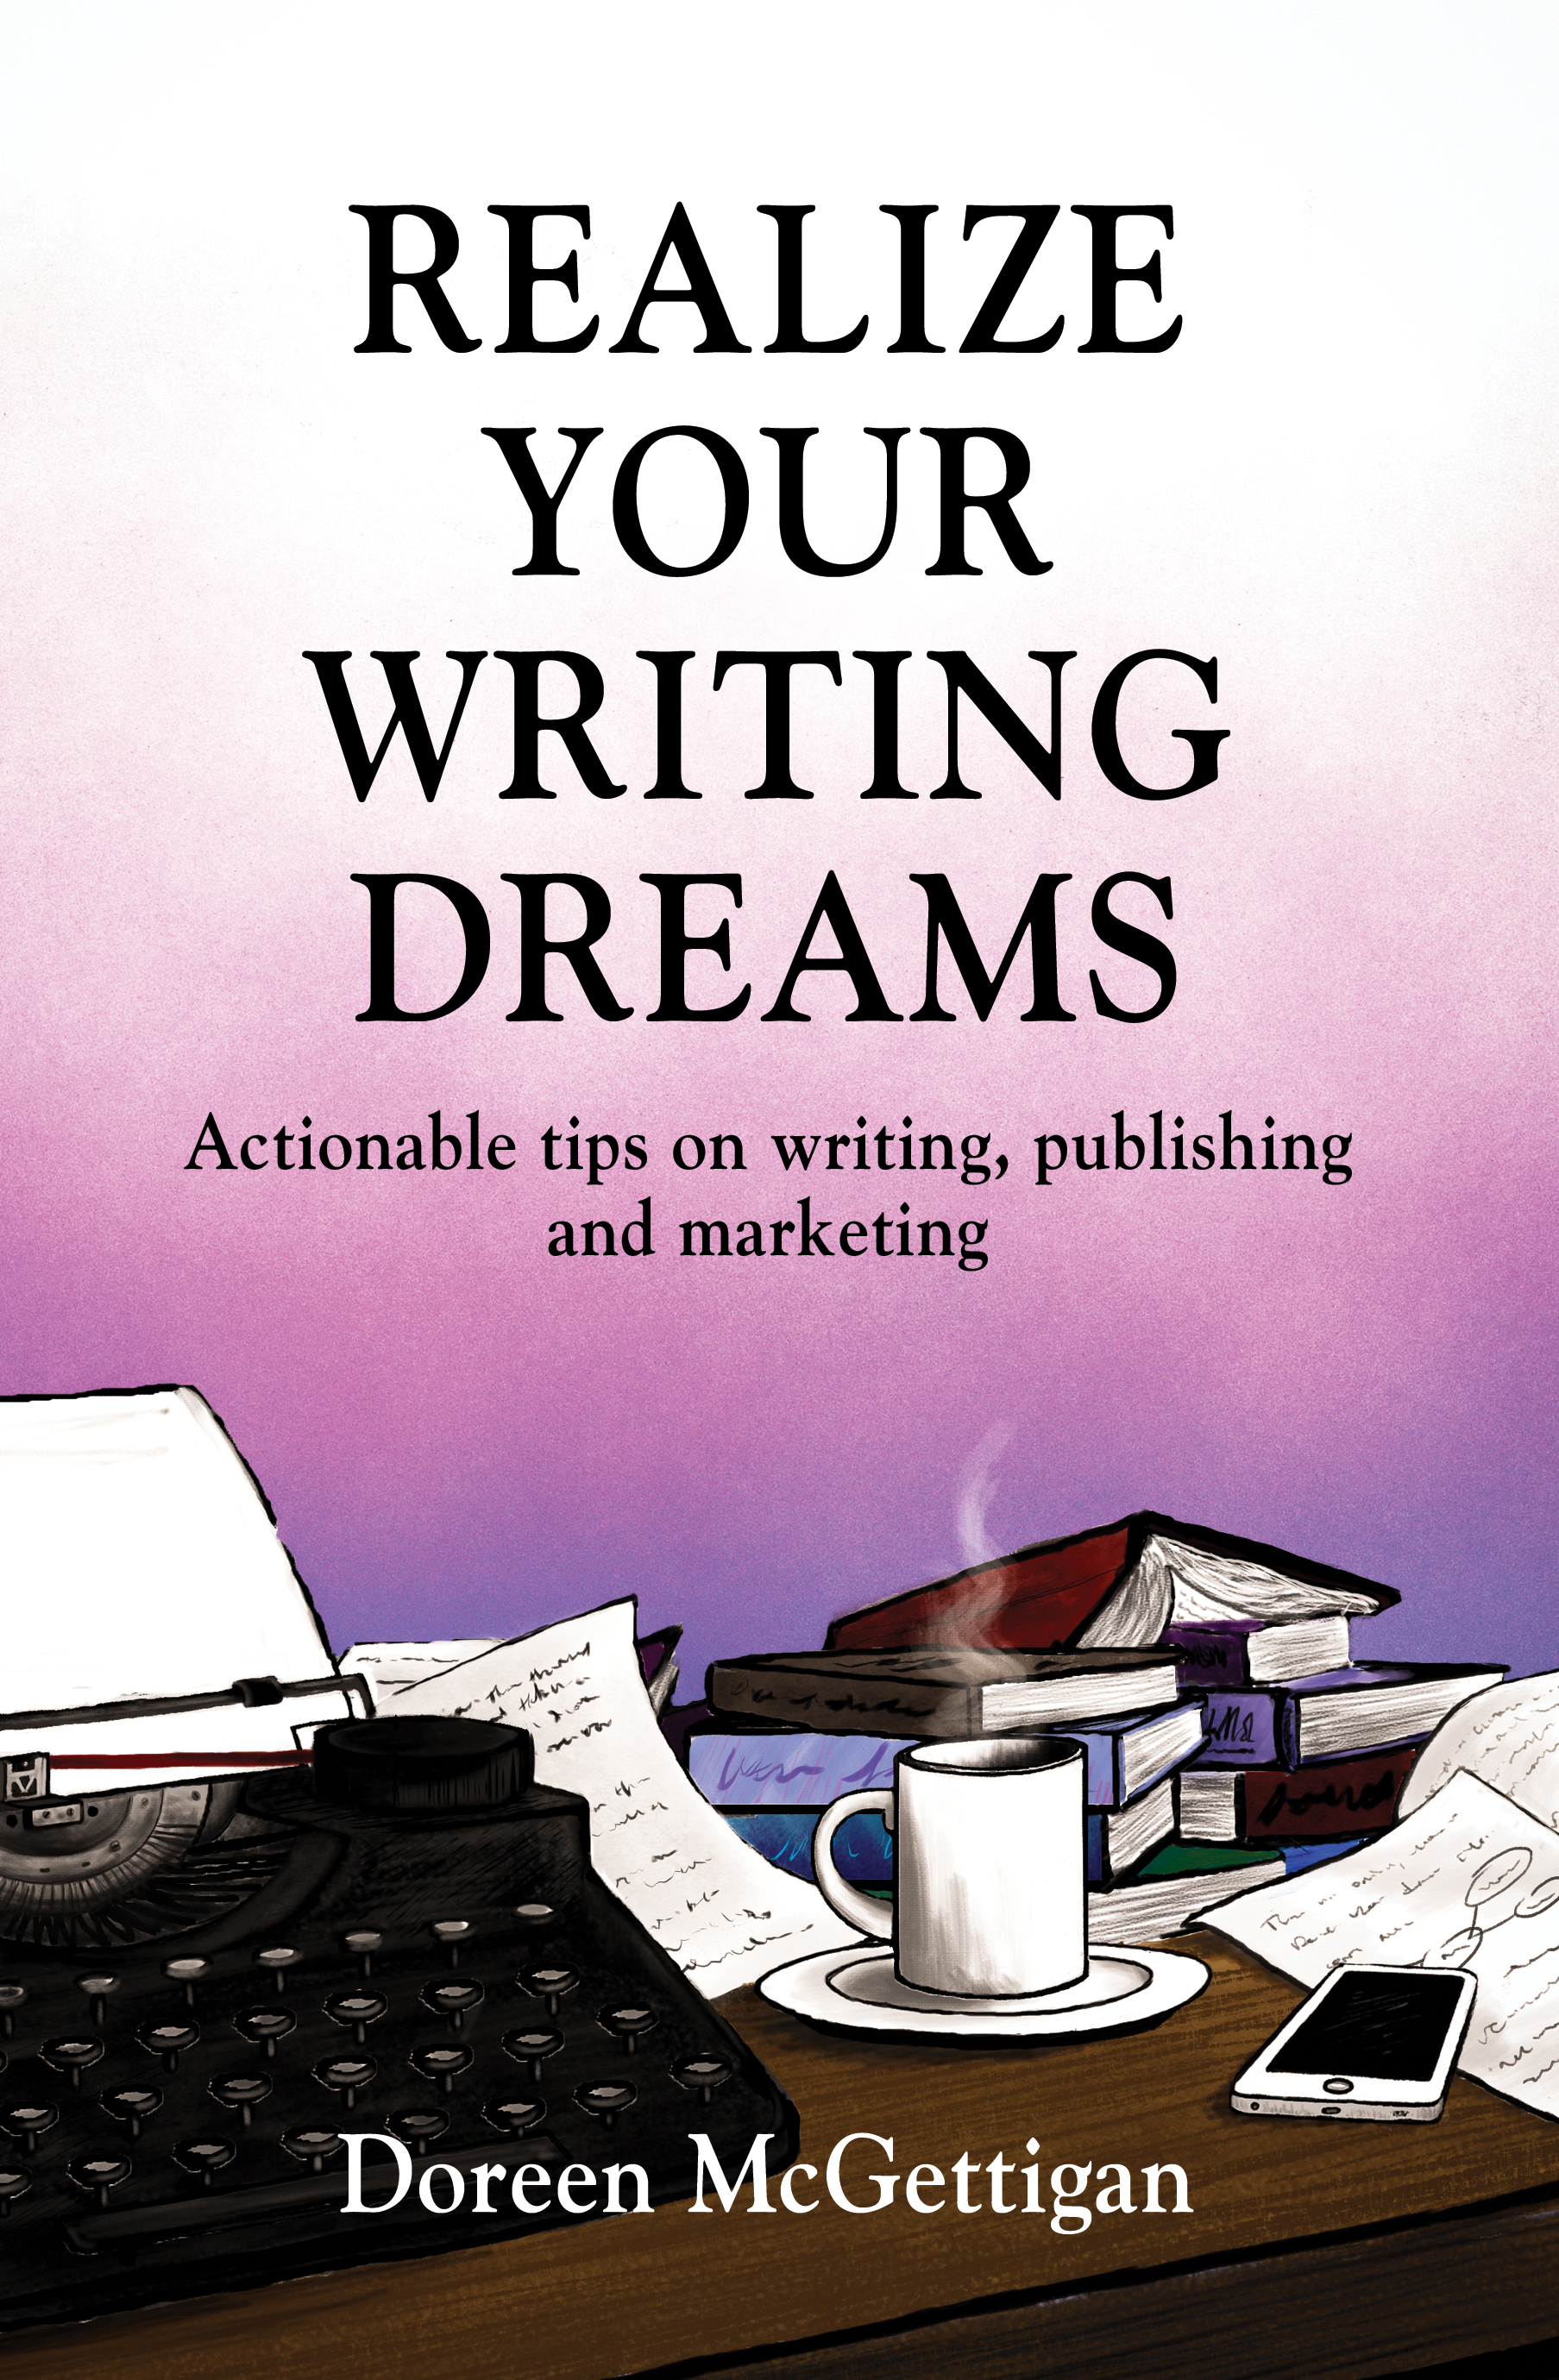 Realize Your Writing Dreams: Everything you need to know about writing, publishing and marketing books w/ Doreen McGettigan